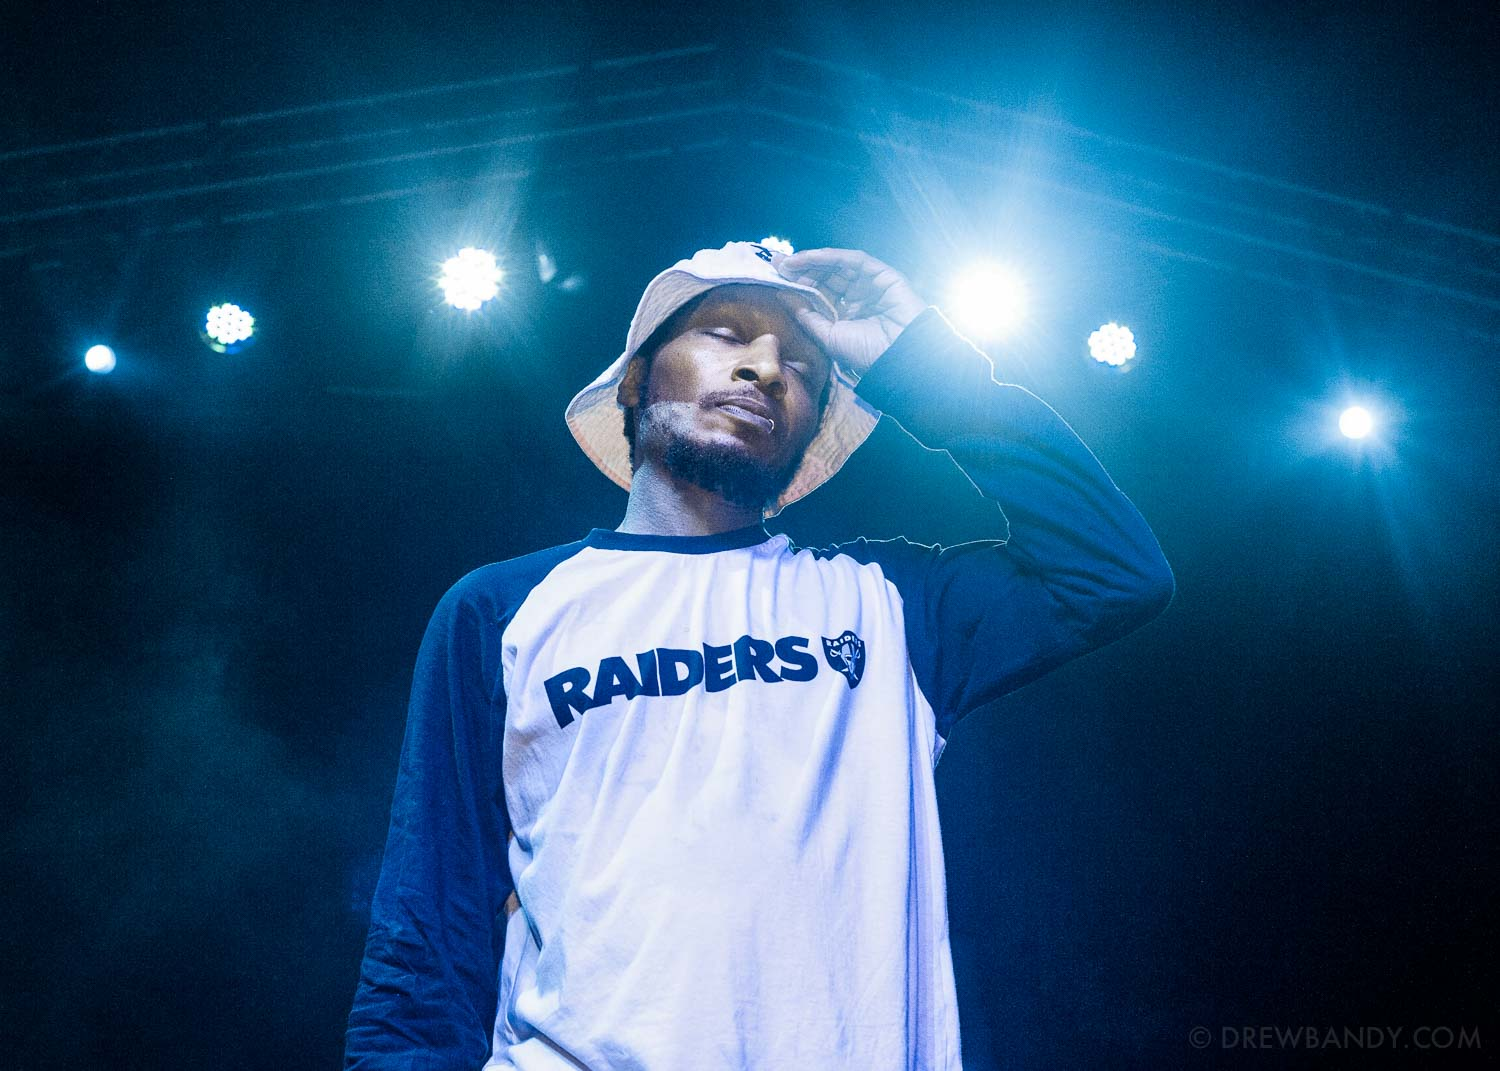 Del the Funky Homosapien (Photo by Drew Bandy)